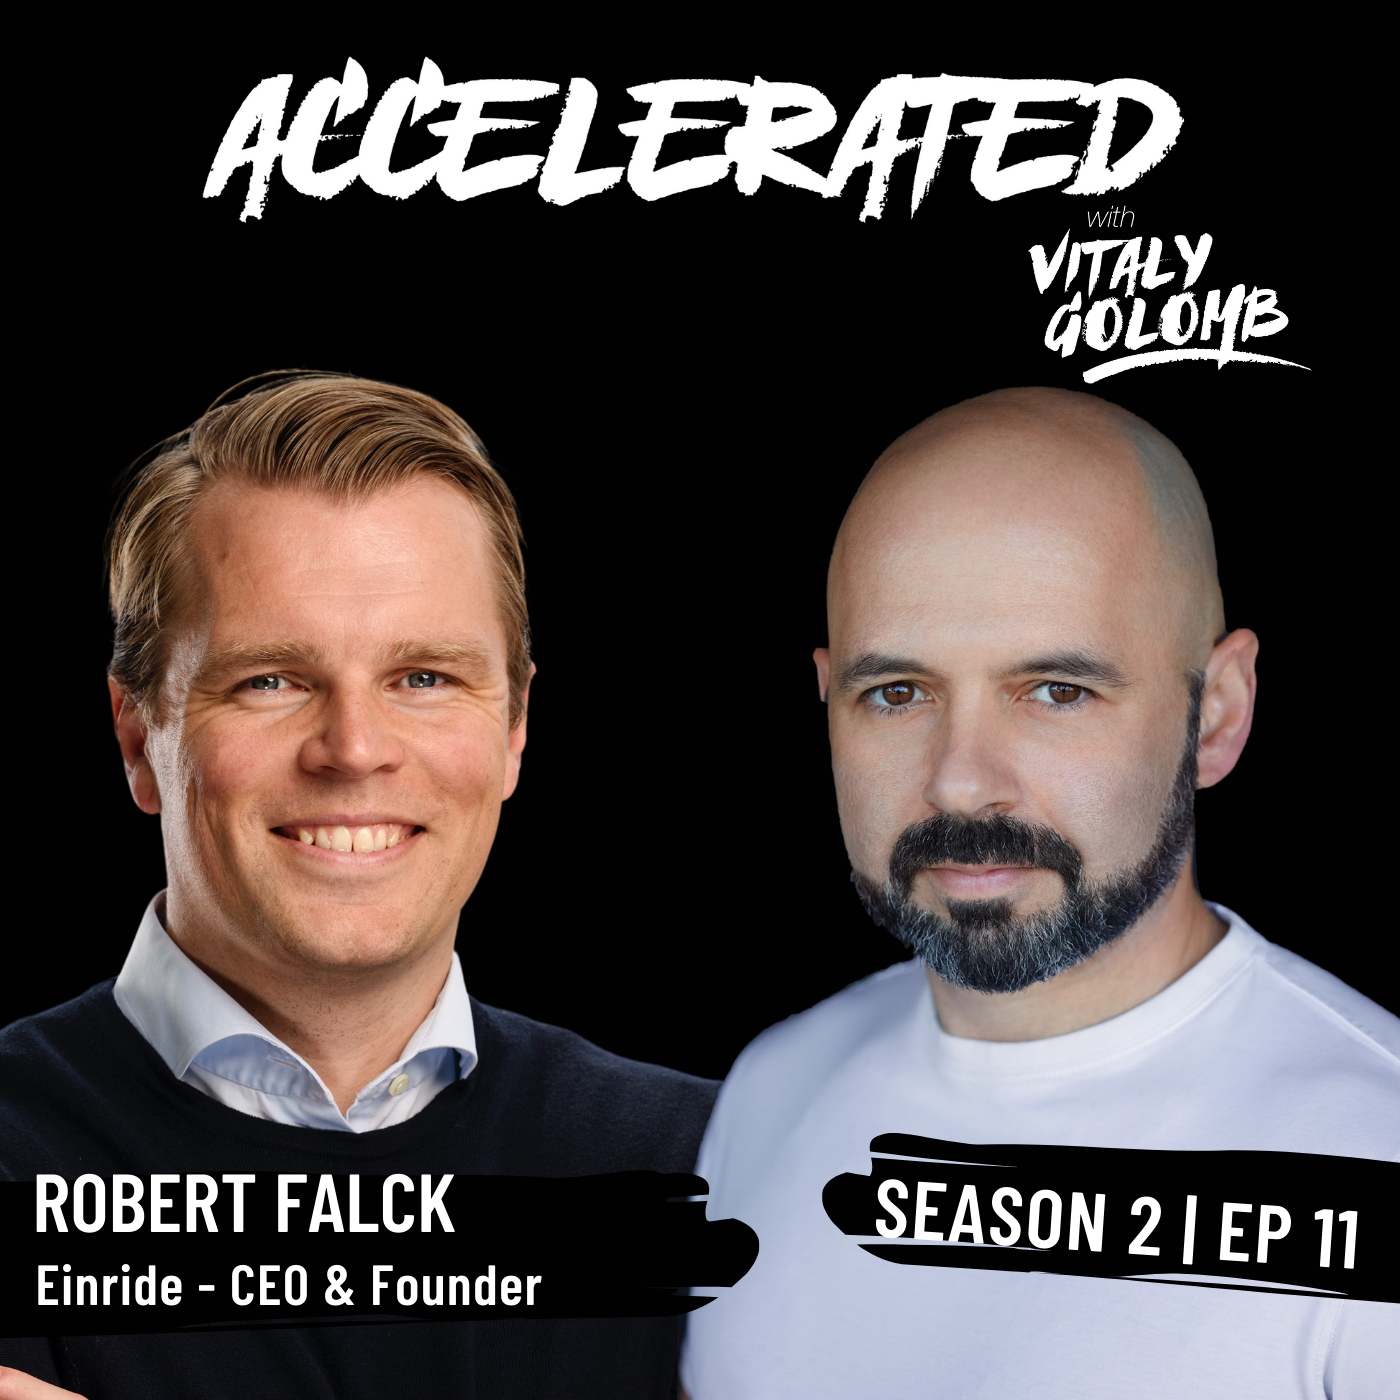 Artwork for podcast Accelerated with Vitaly Golomb